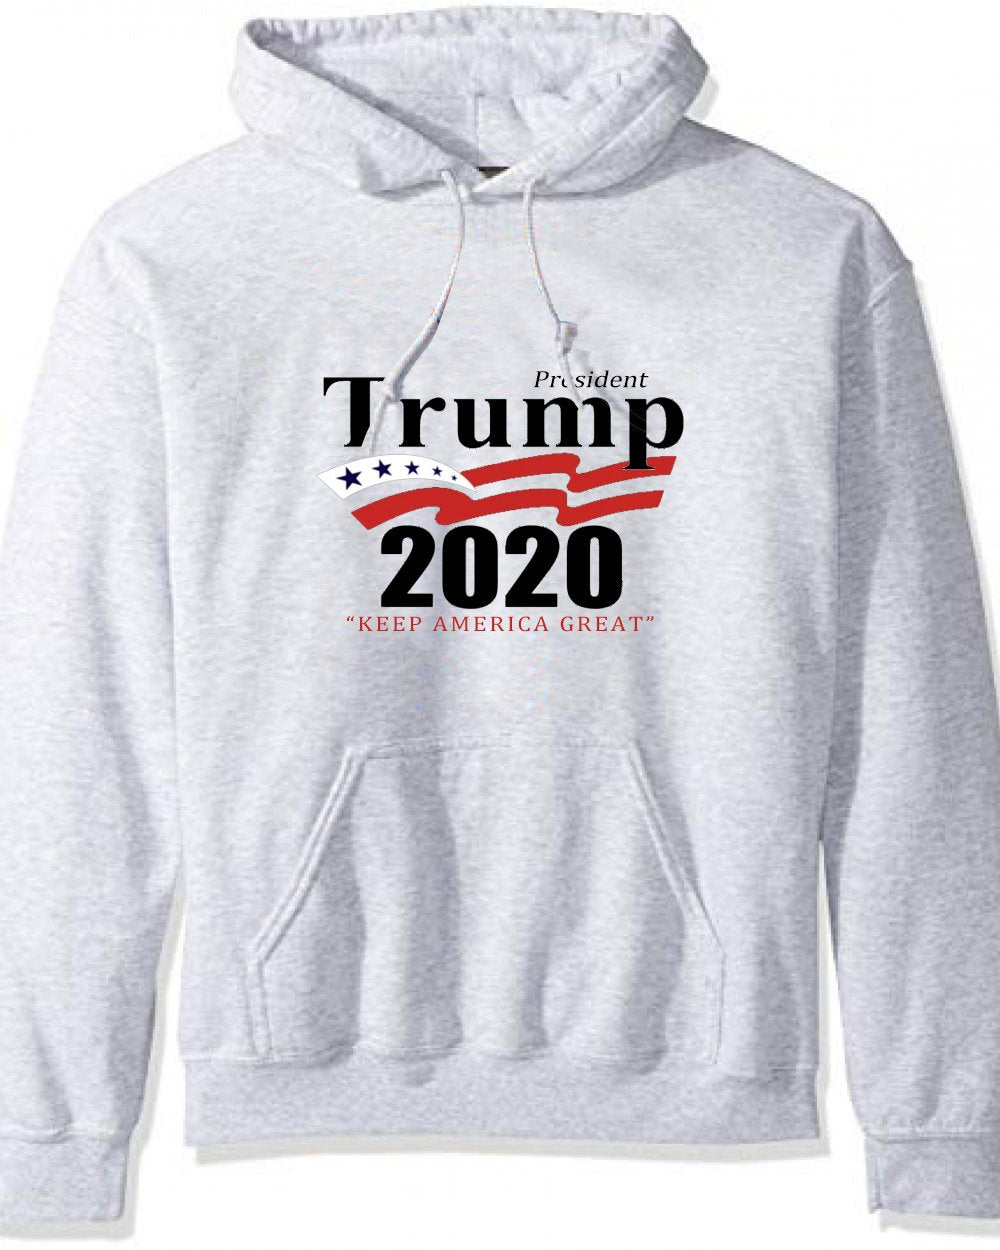 President Trump 2020 Keep America Great Hoodie